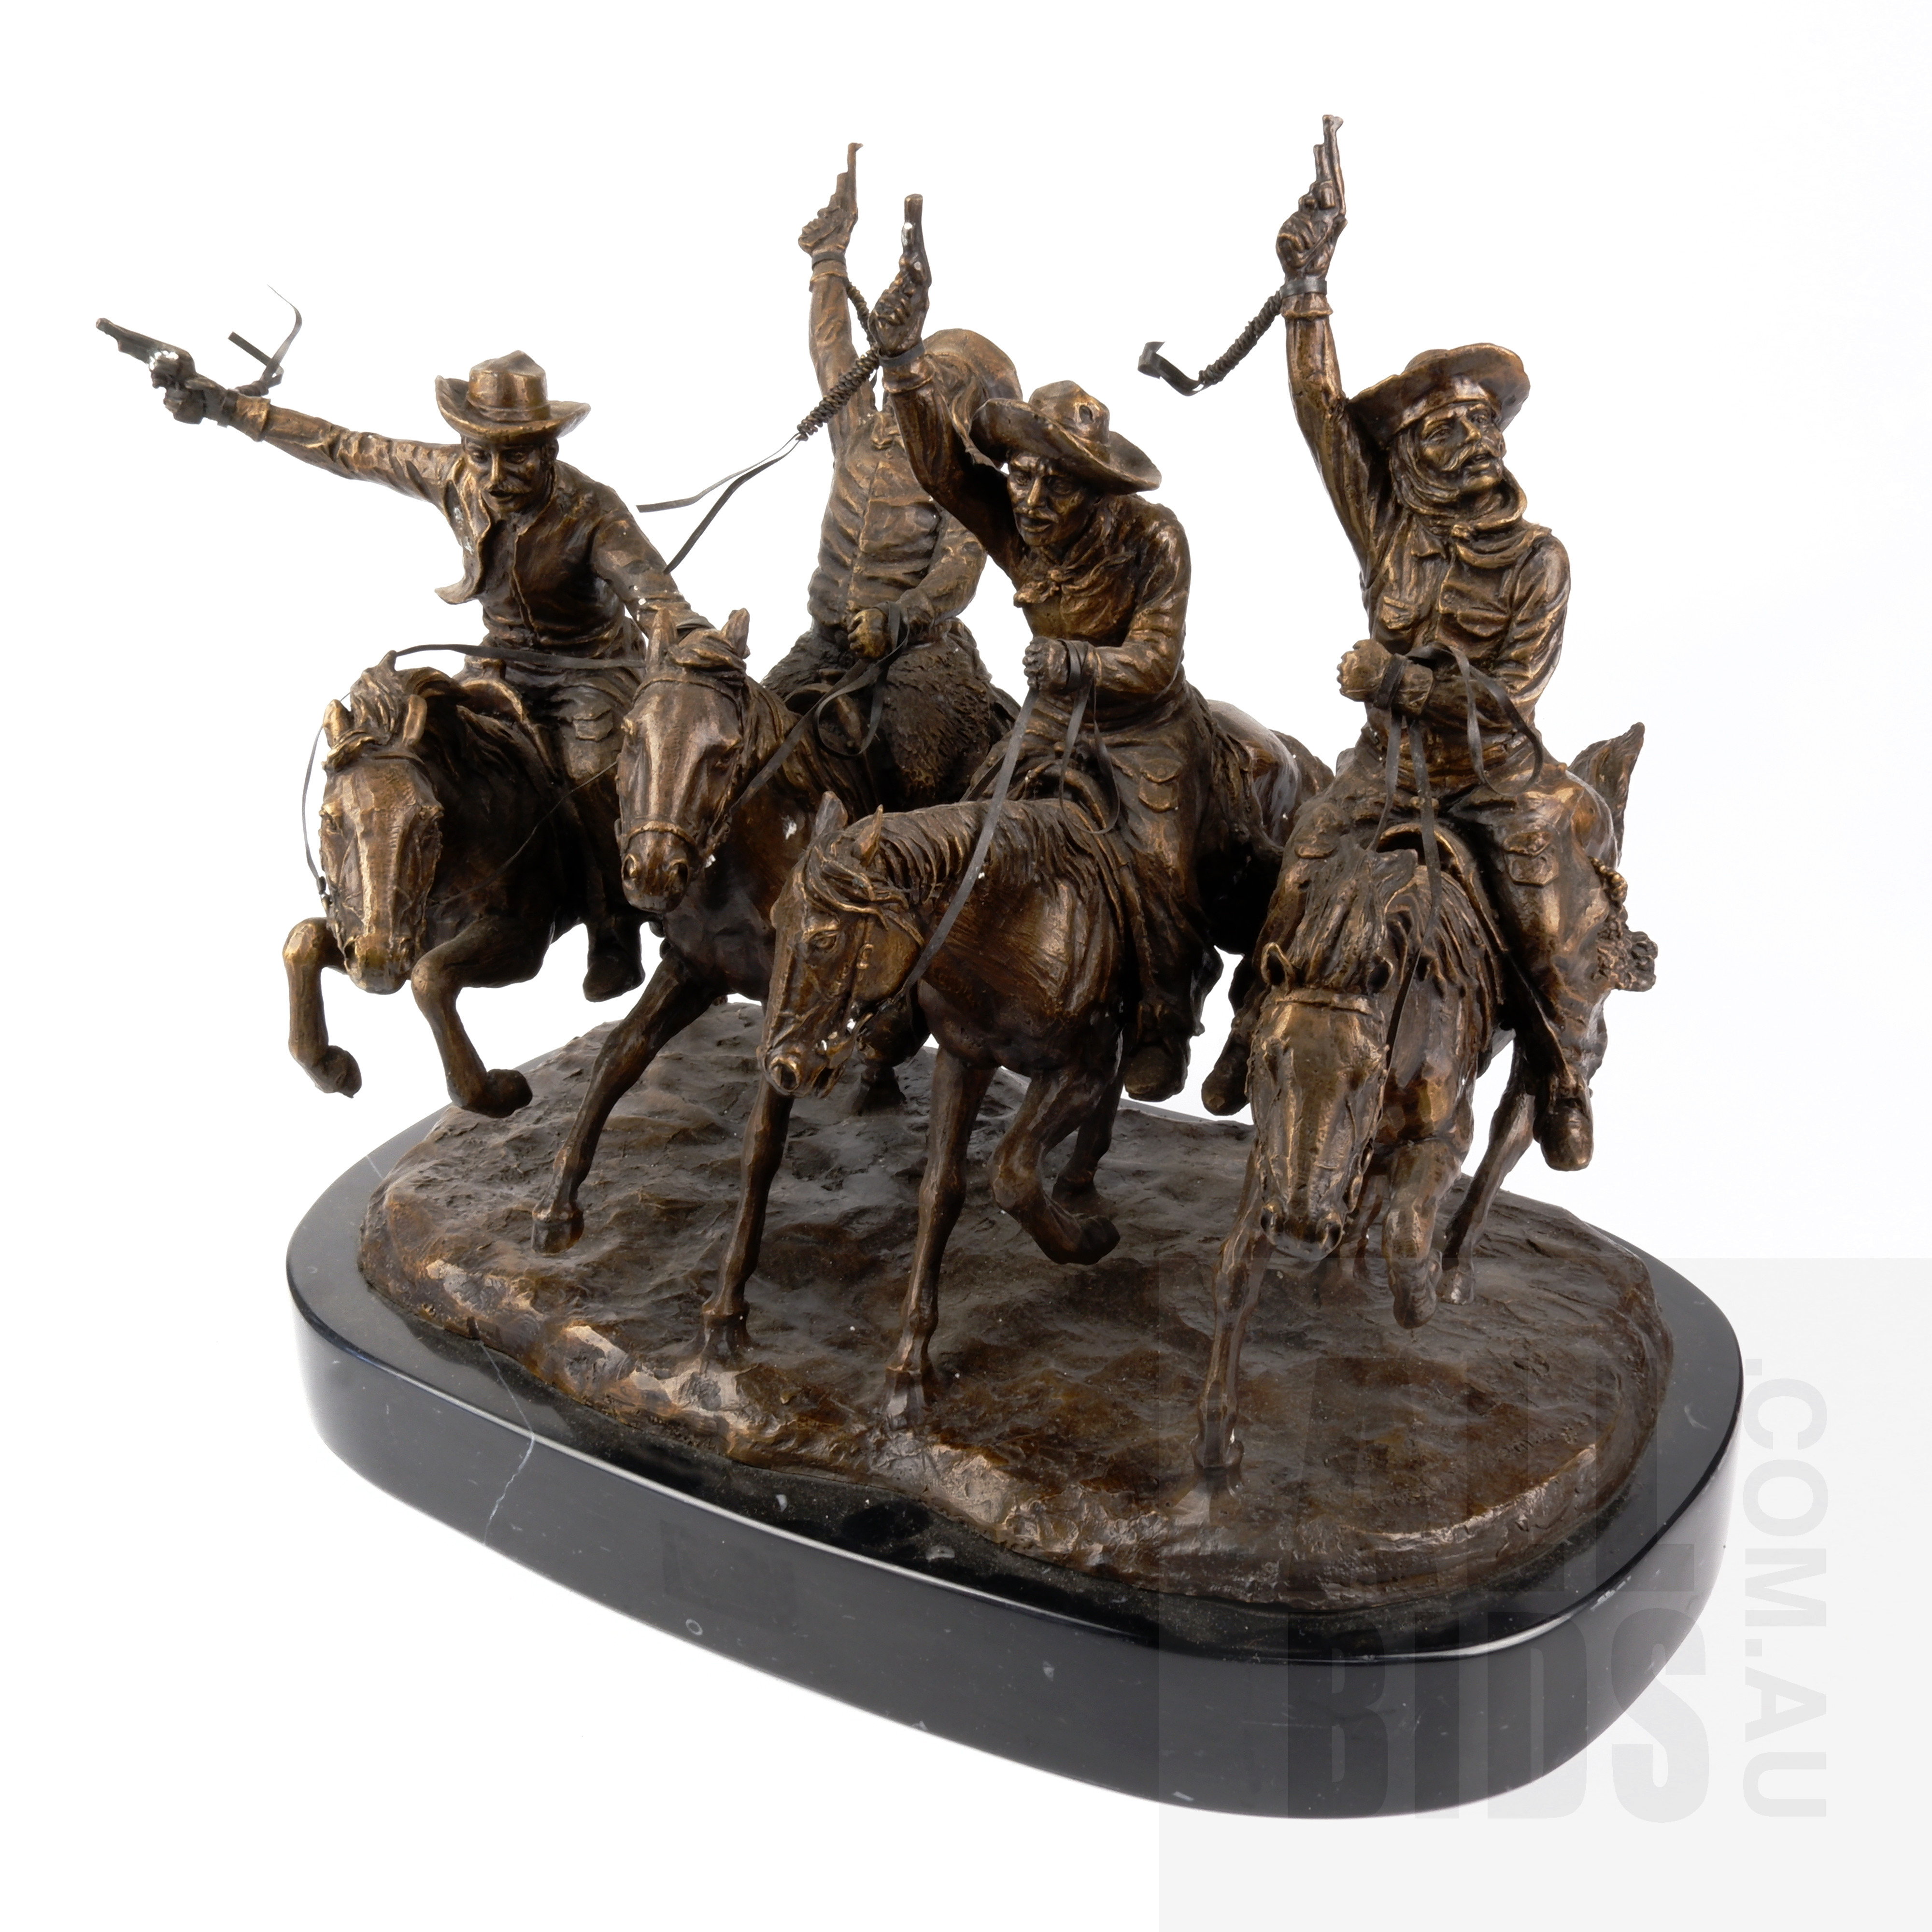 'Frederic Remington (1861-1909), Coming Through the Rye, Bronze, Height: 34 cm including base'